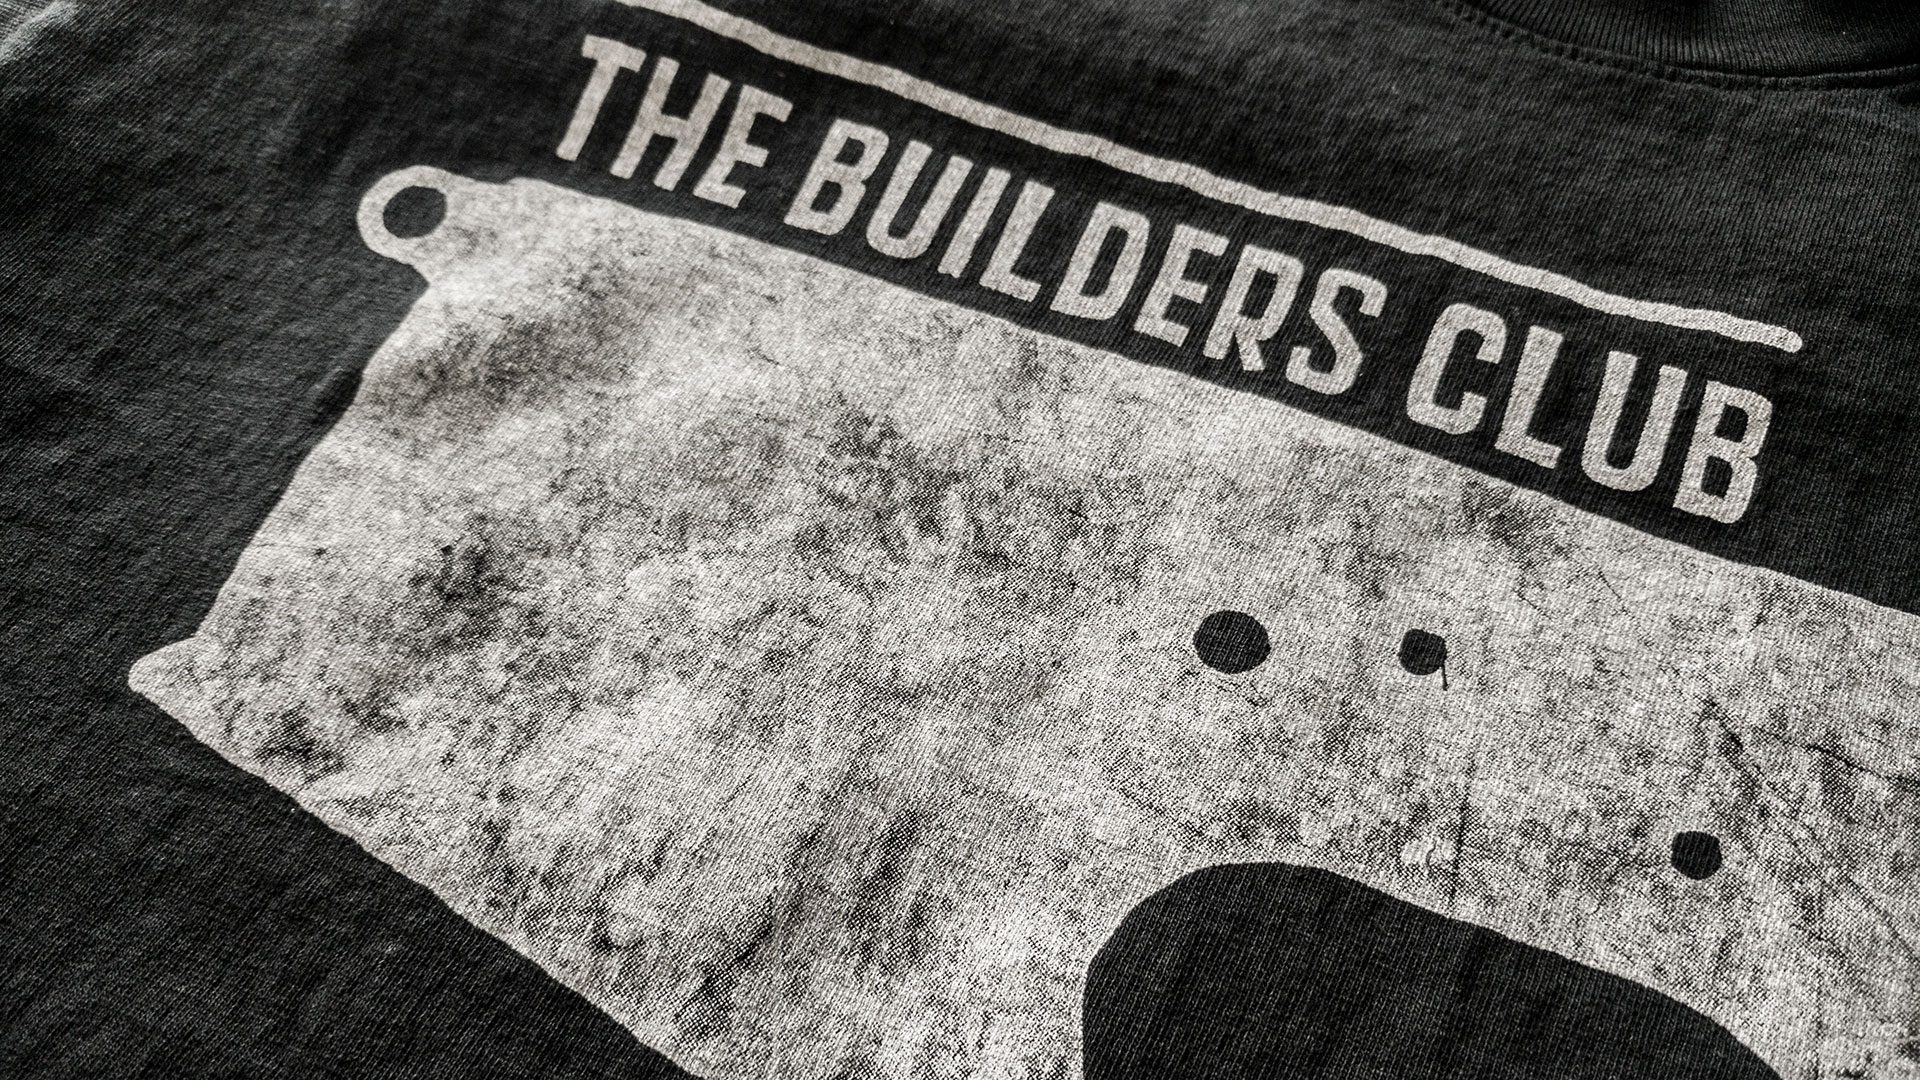 AR-15 Builders Club T-shirt Detail